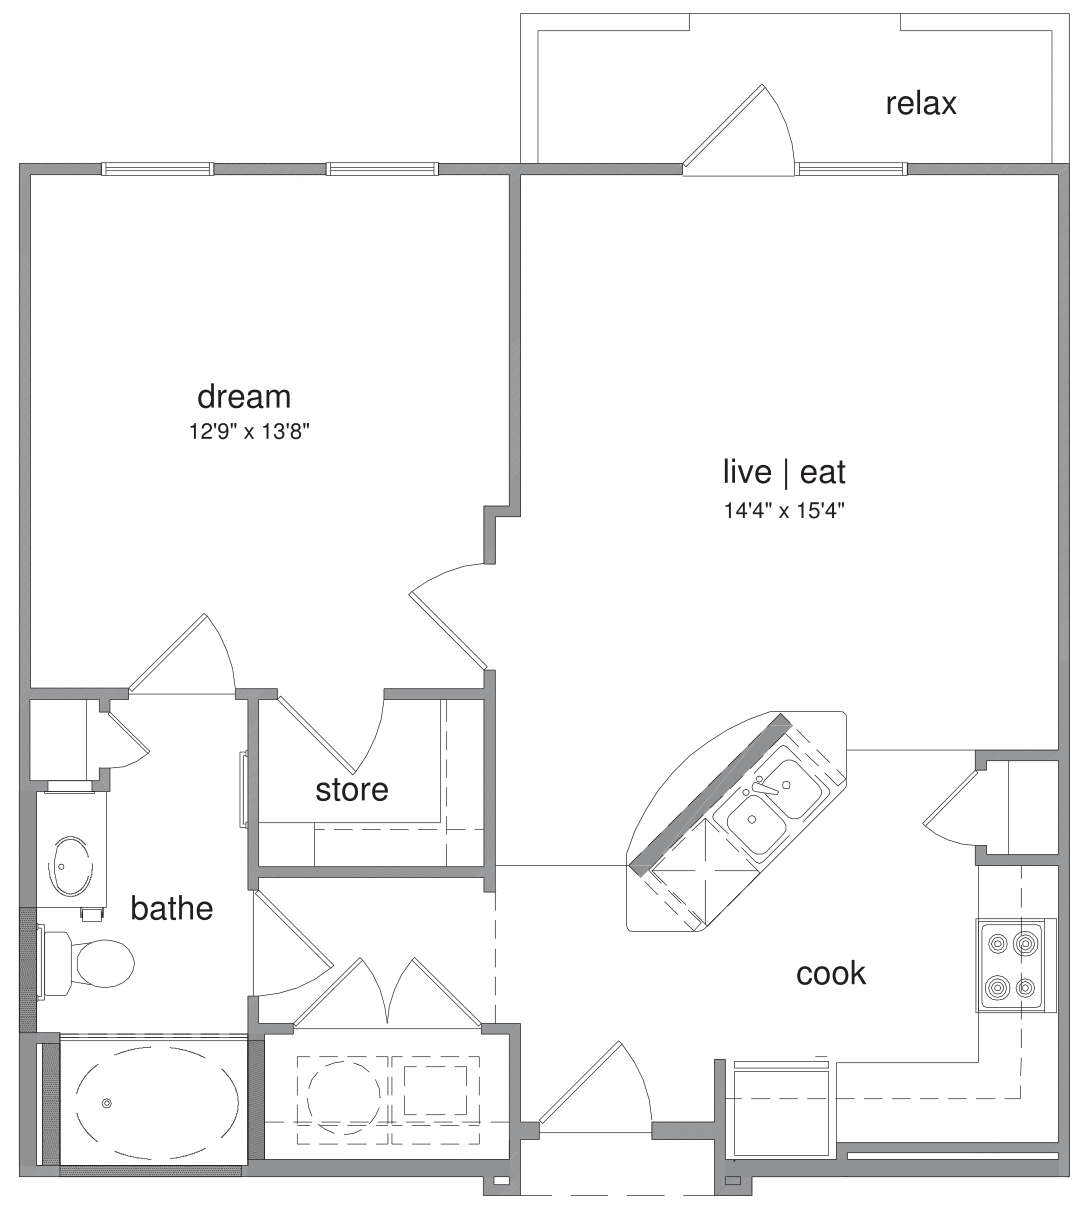 Floorplan - Colin image